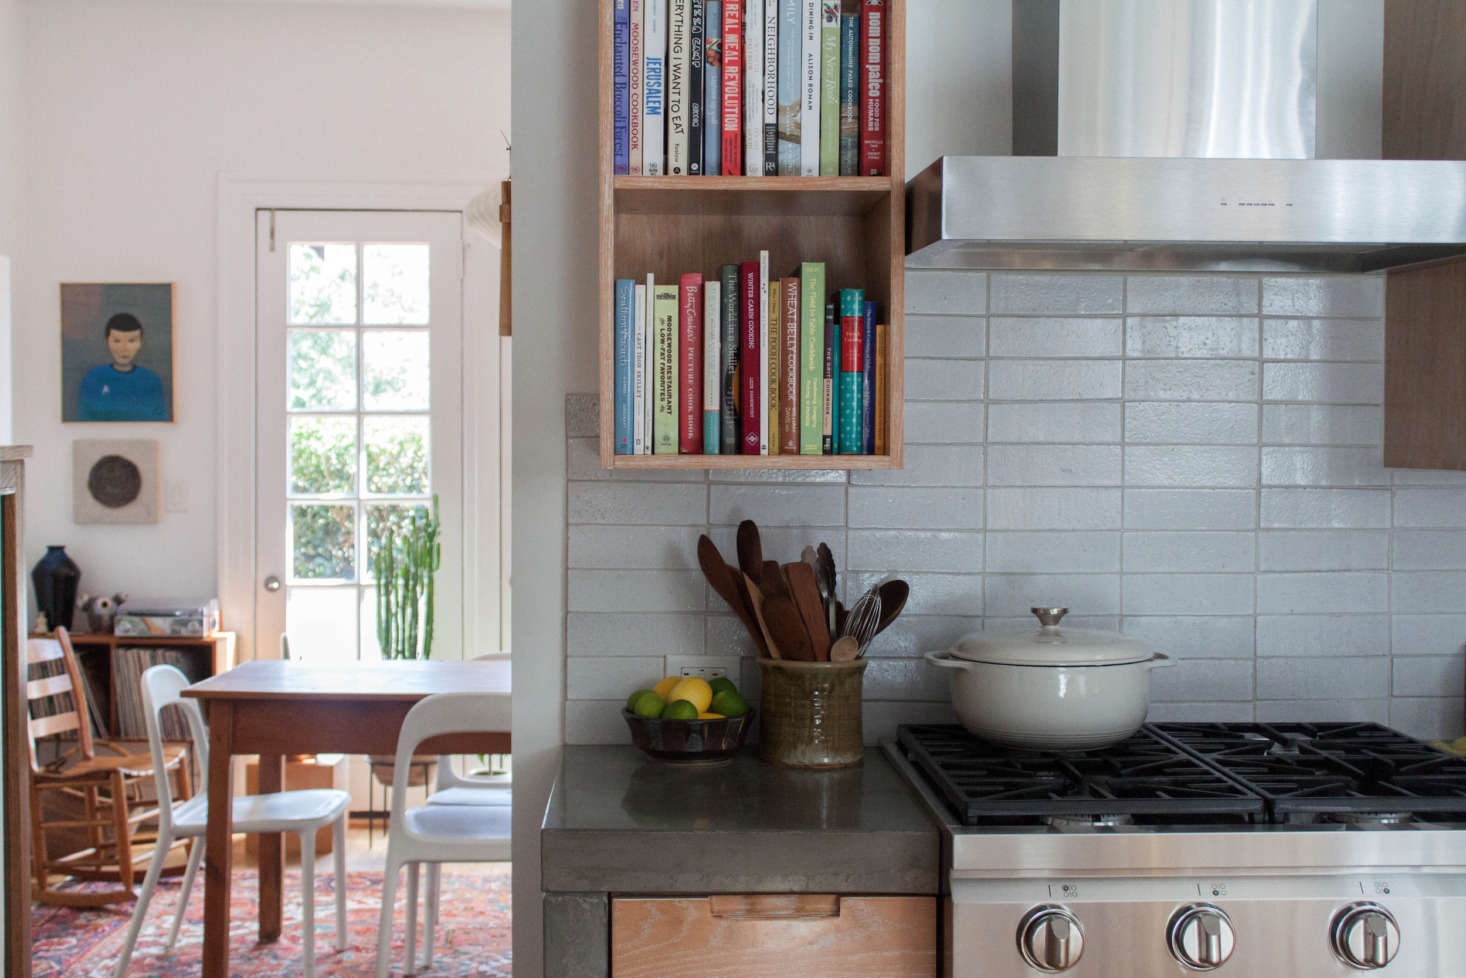 Fireclay tiles make up the backsplash. The utensil holder is by local potter Wade Franklin.